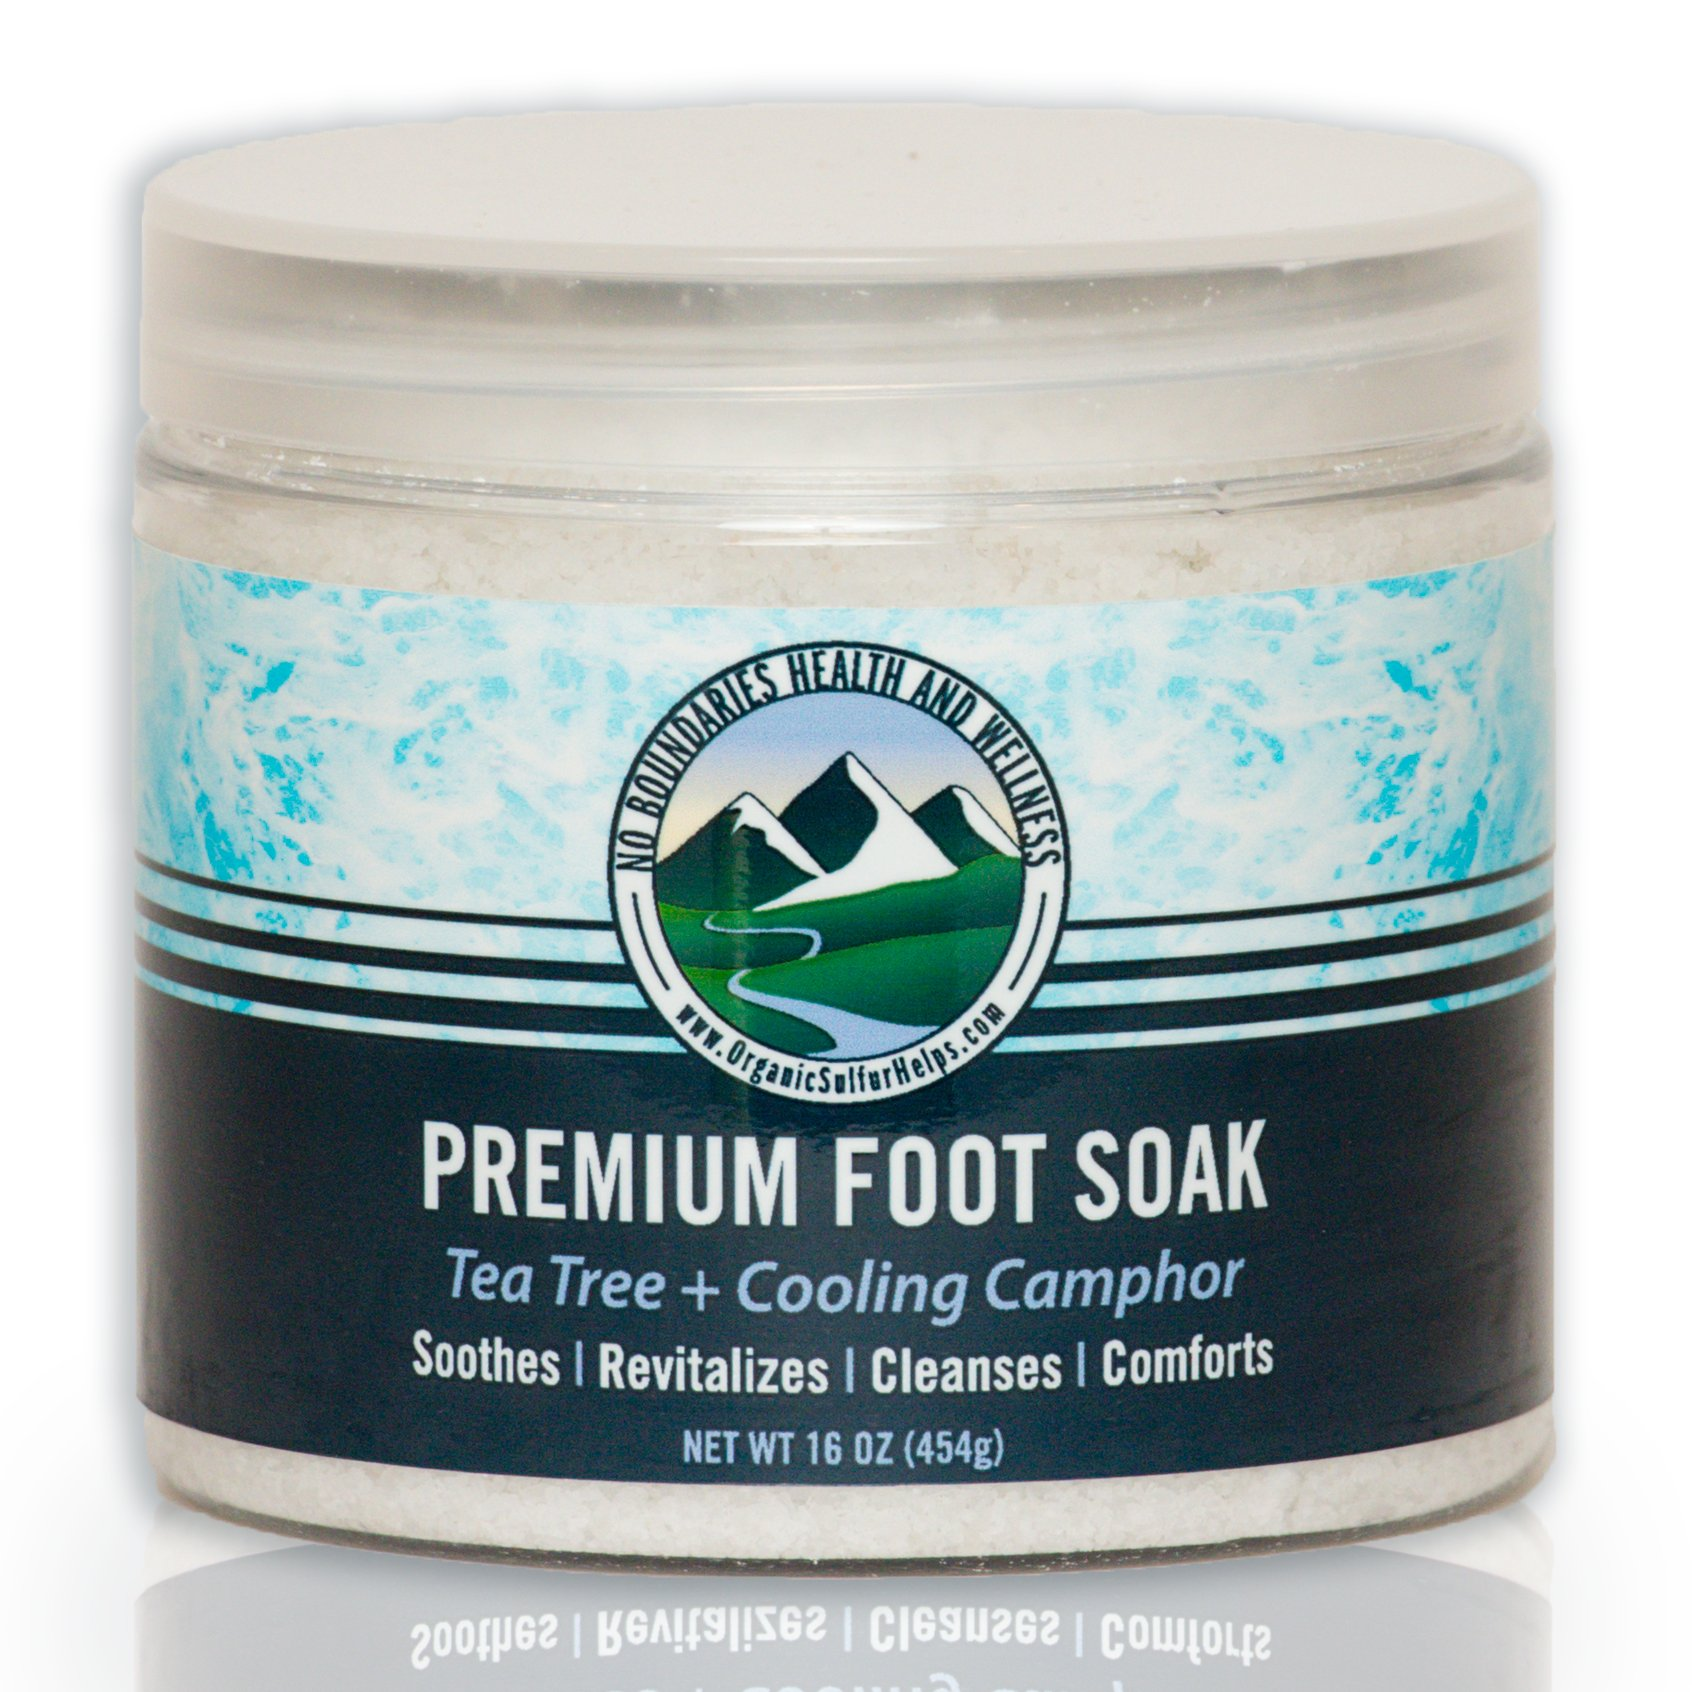 No Boundaries Health and Wellness Tea Tree Oil Foot Soak - Spa Quality at Home - Premium Blend of Soaking Salt, Aromatherapy Essential Oils and Our MSM Organic Sulfur. Best for Foot Soak Tub or Bath